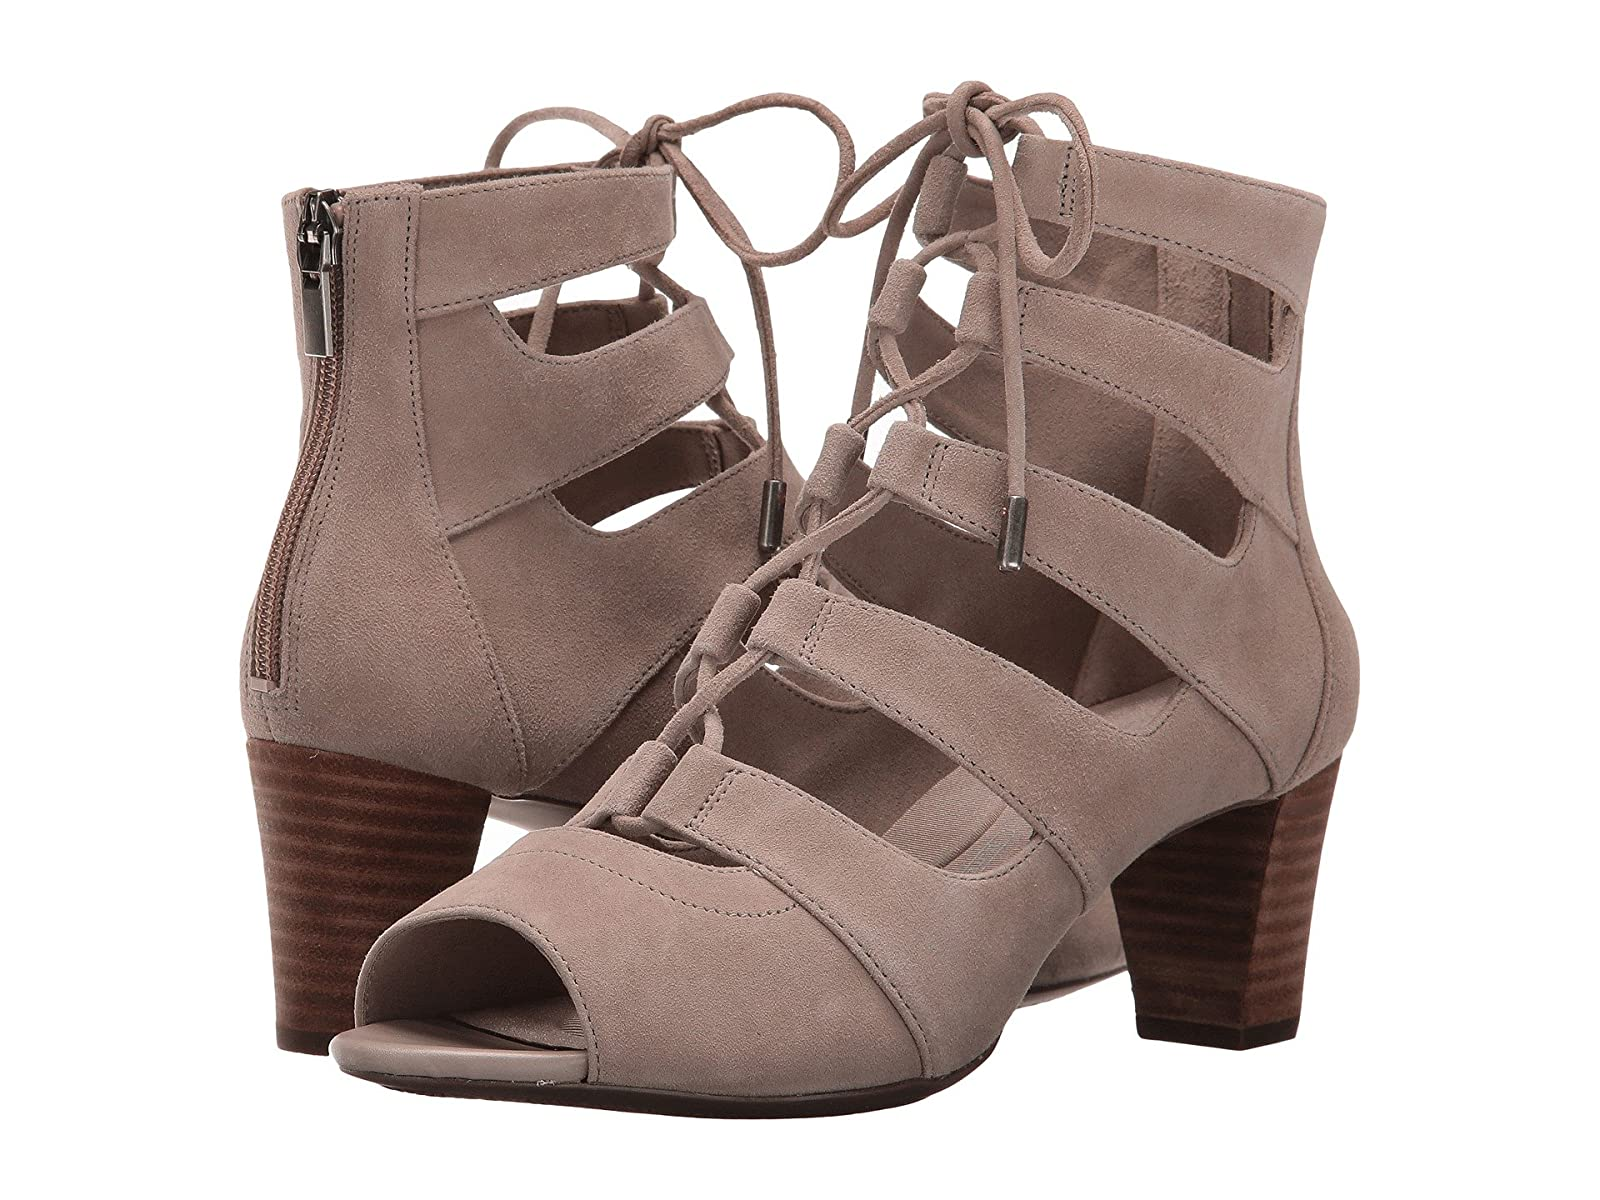 Rockport Total Motion Audrina GhillieCheap and distinctive eye-catching shoes